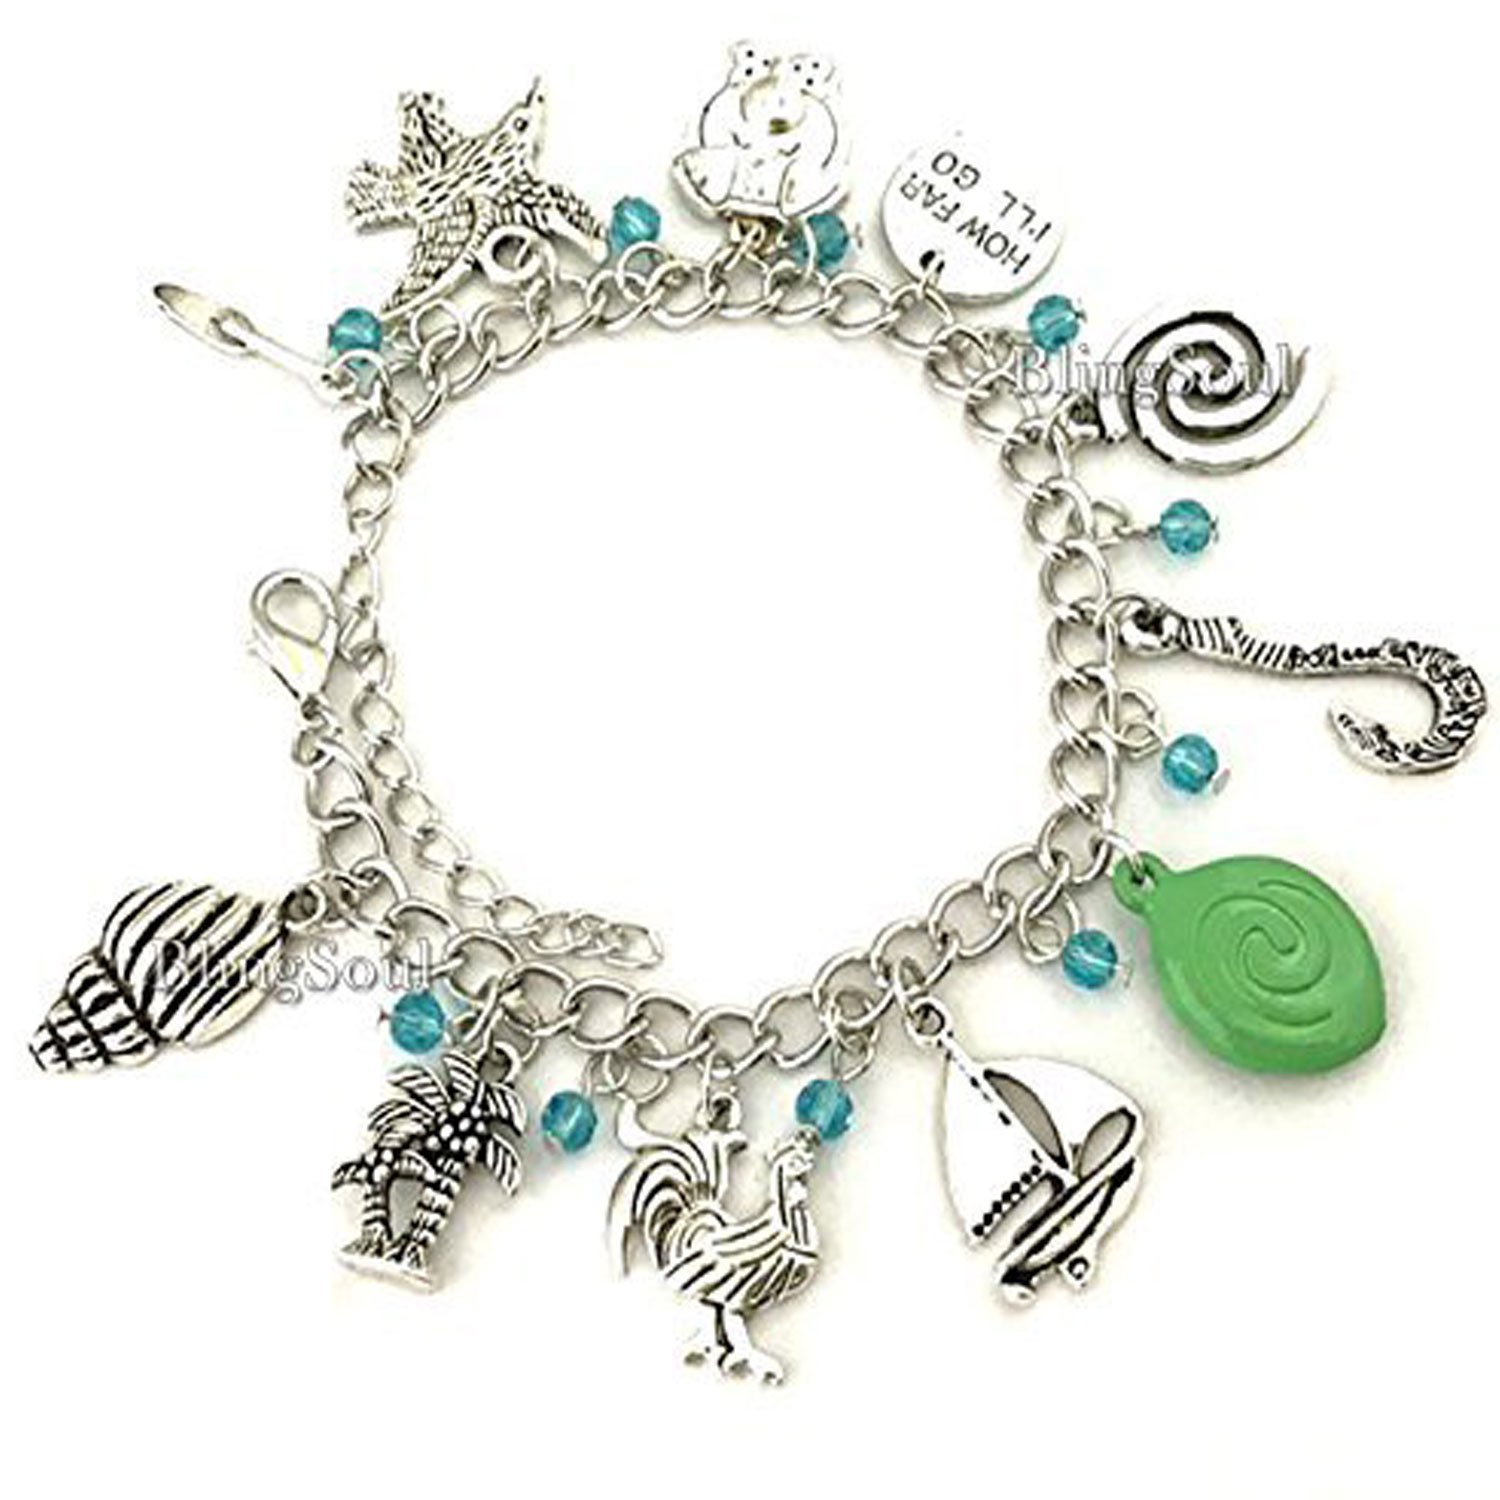 BlingSoul Maui Moana Charm Bracelet - Maui Hook Jewelry Moana Gift Merchandise for Women by BlingSoul (Image #3)